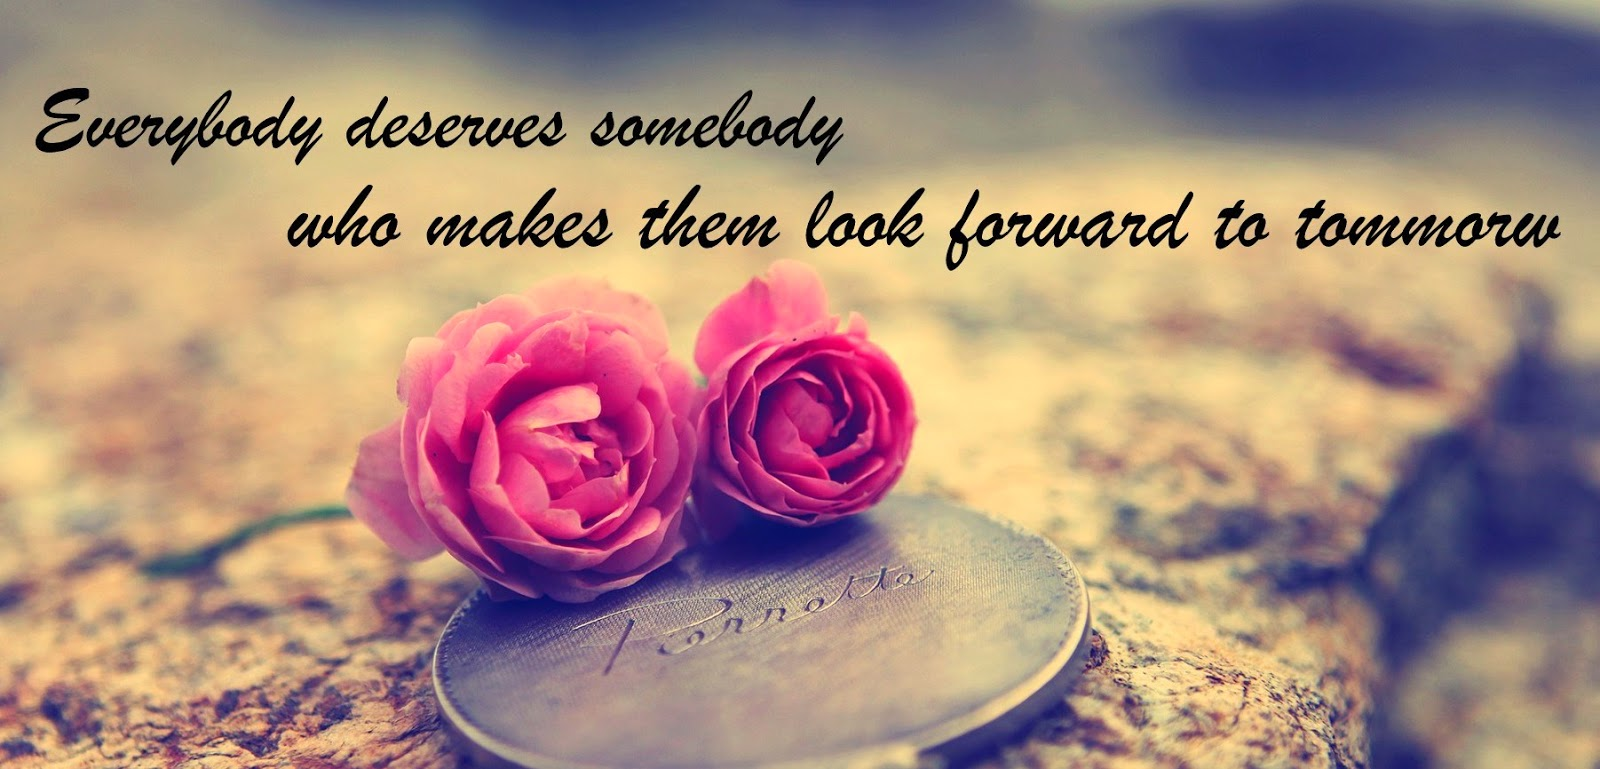 Love Quotes For Fiance Beautiful Love Quotes For Her With Rose Flower Images